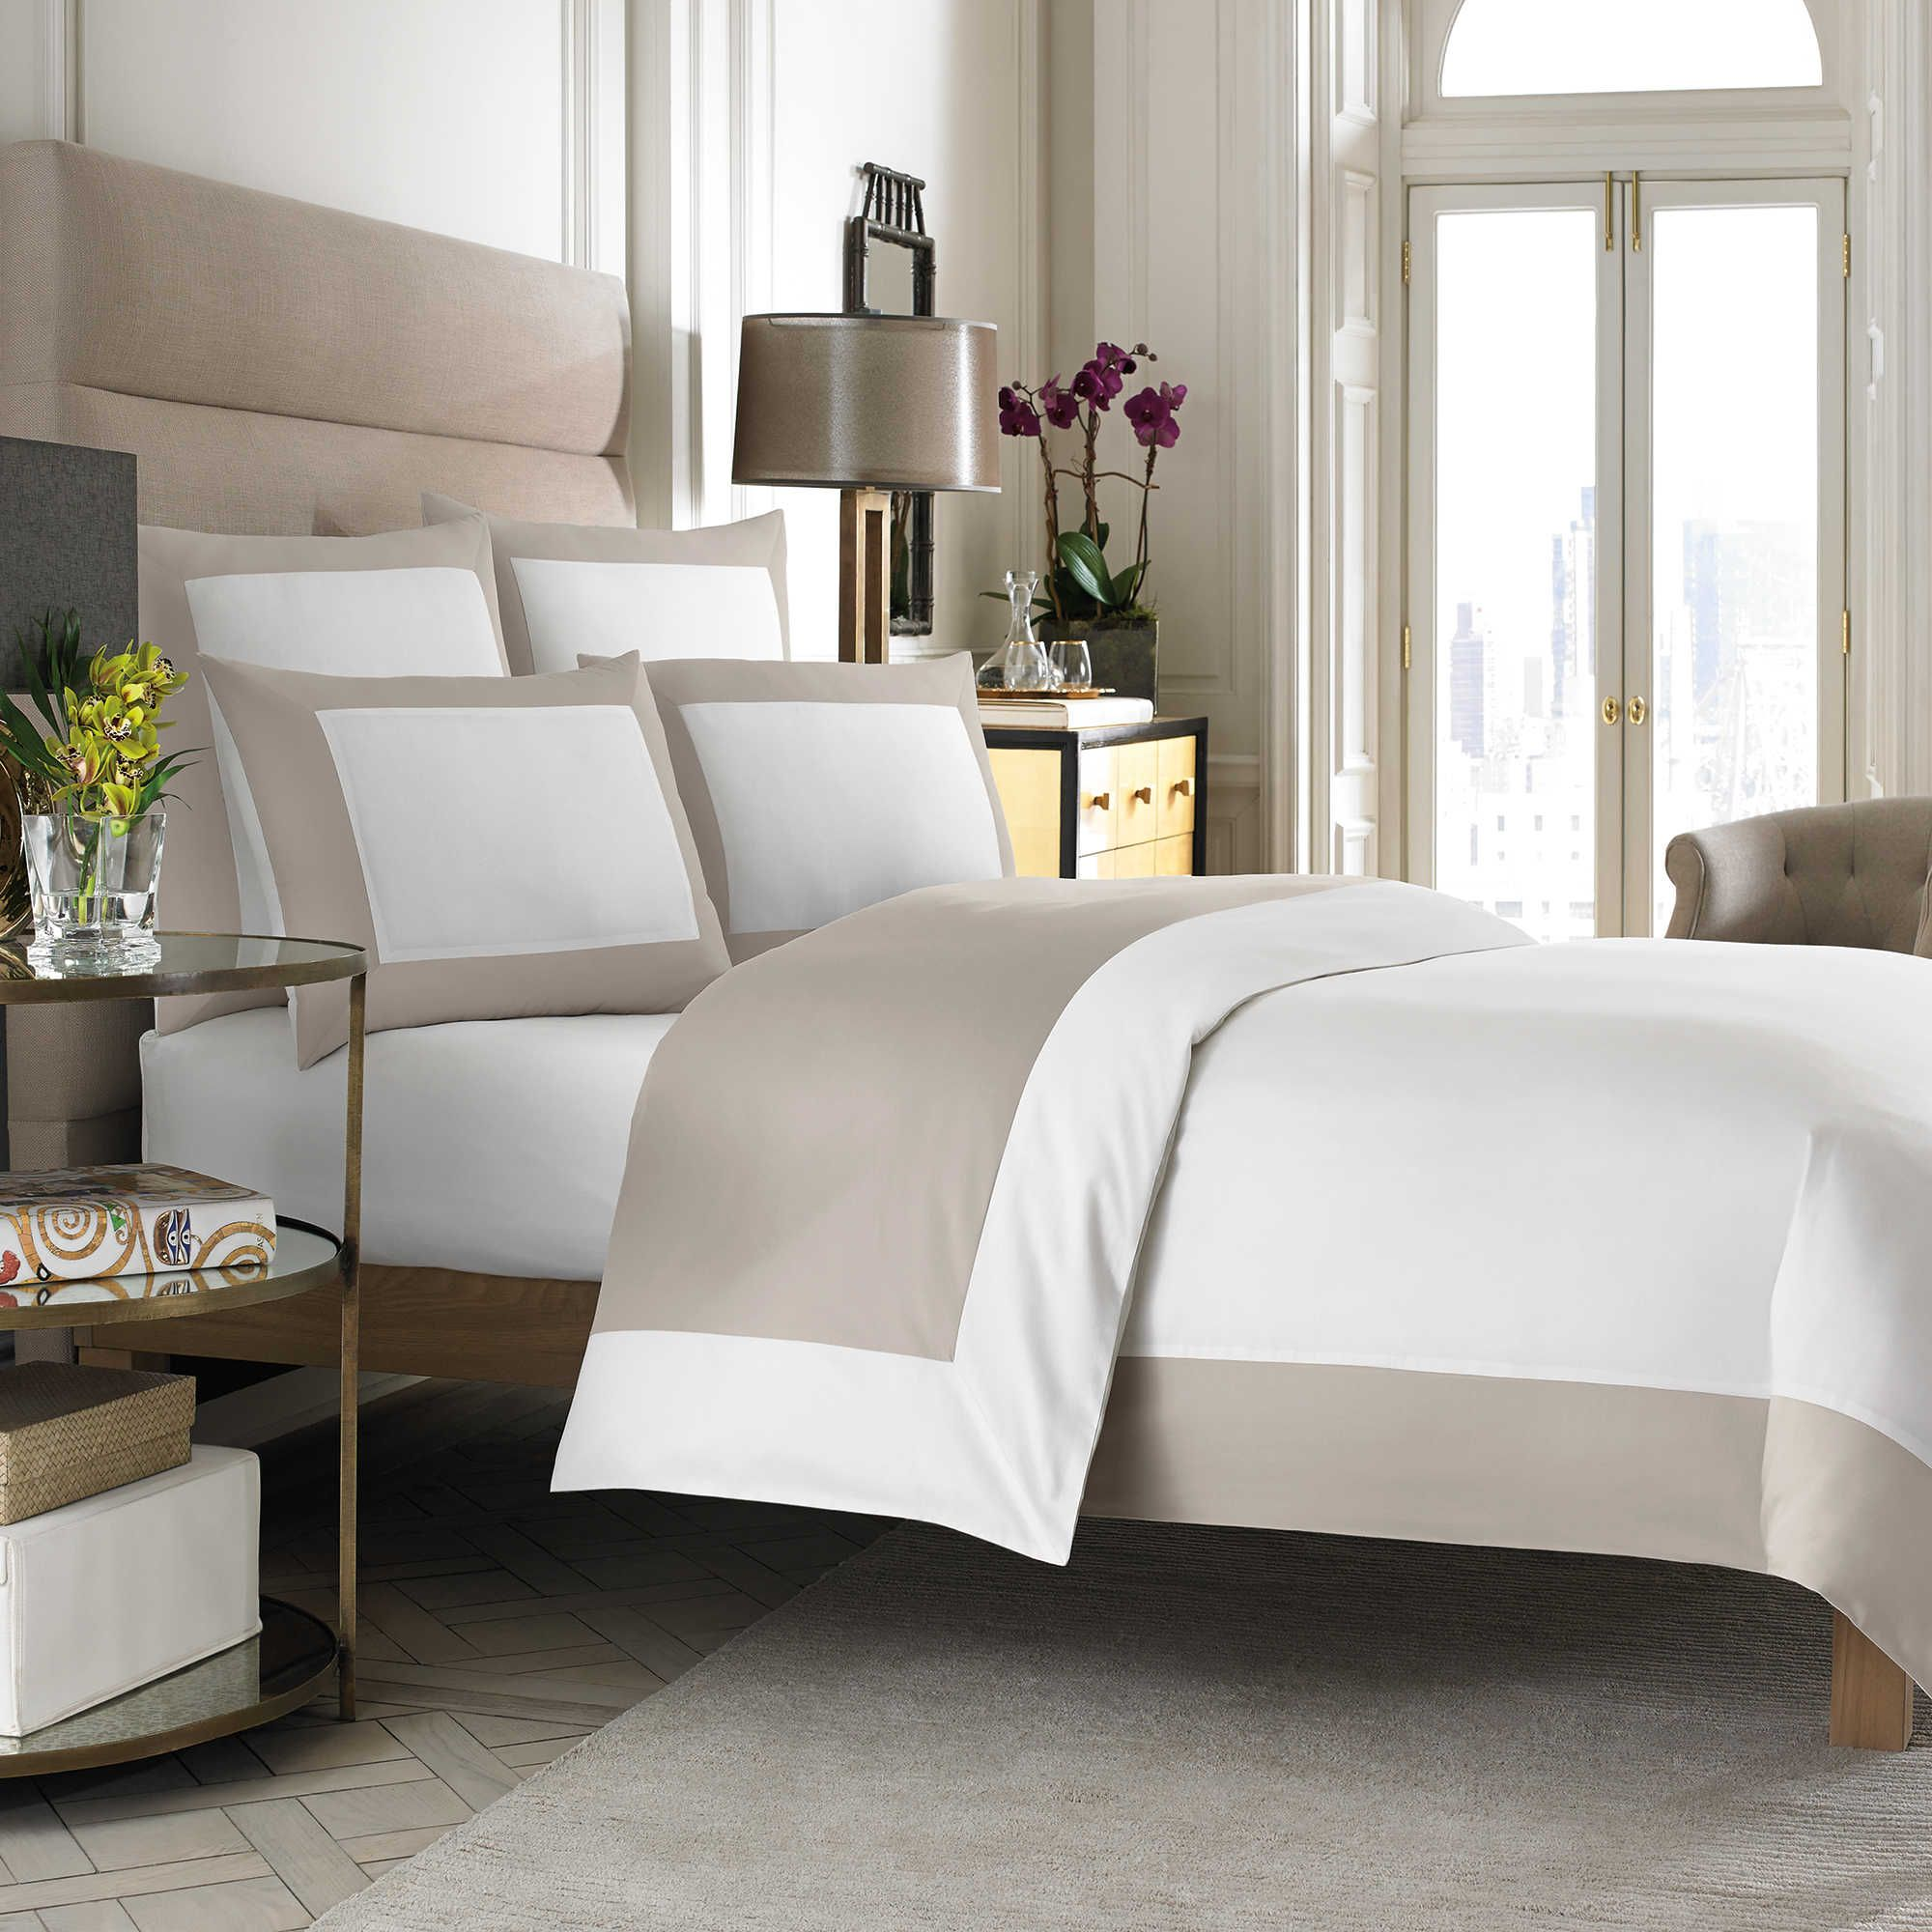 Wamsutta Hotel Micro Cotton Reversible Twin Duvet Cover In White Taupe Twin Duvet Covers